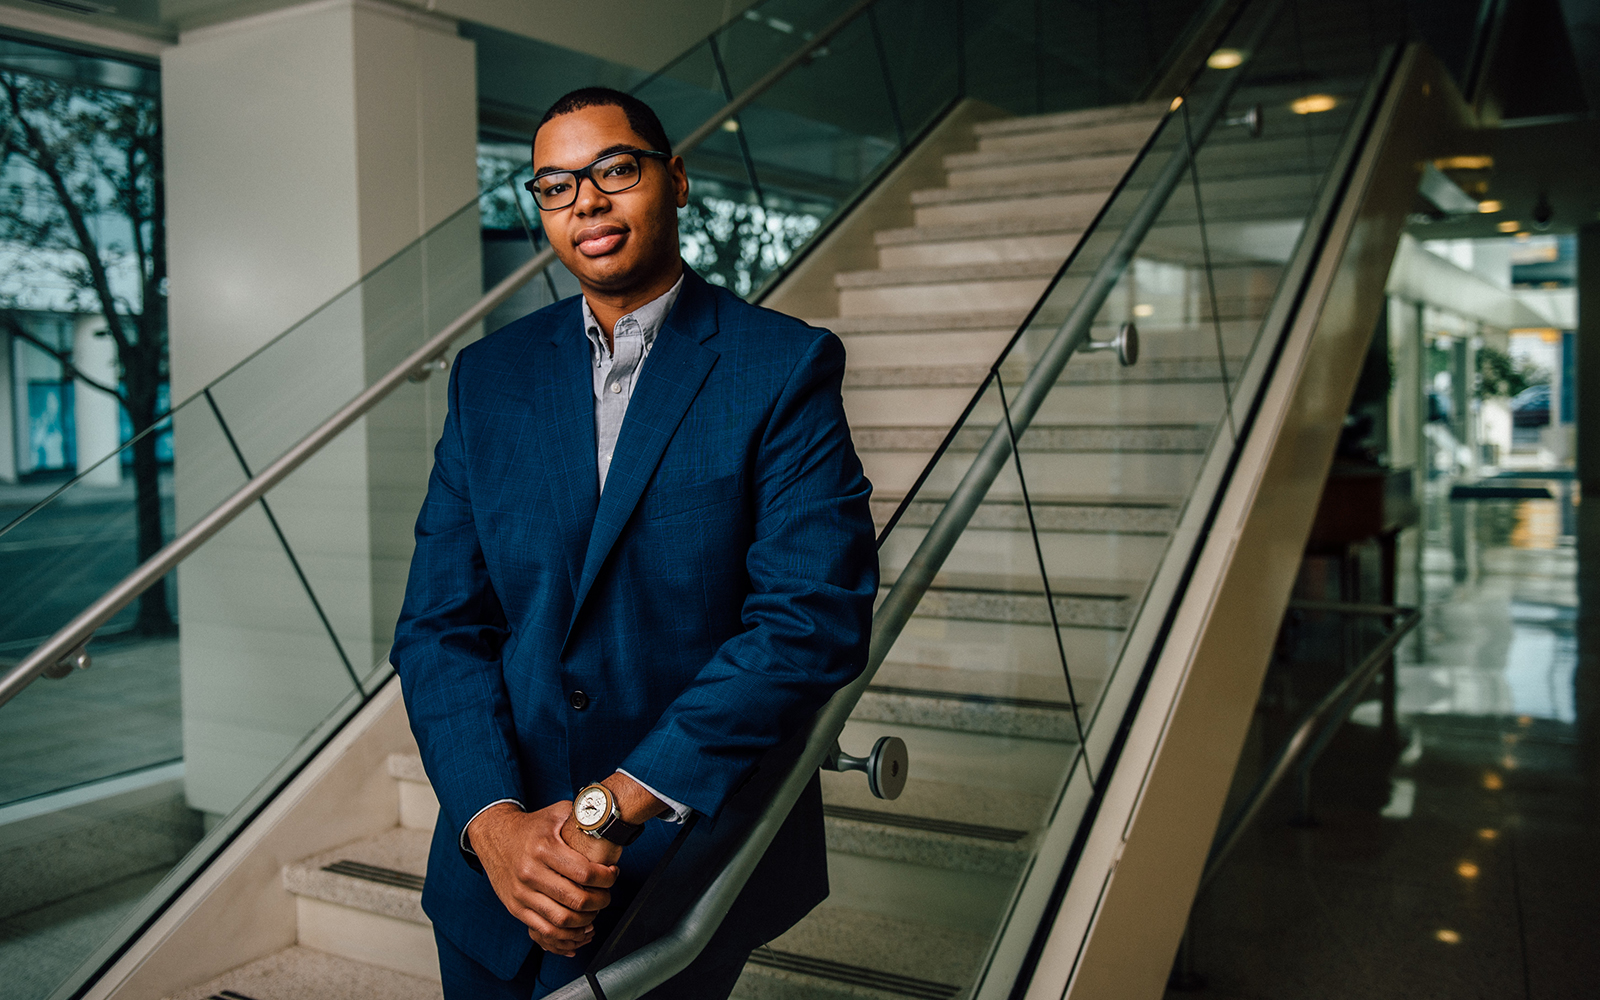 Stamford business major Christian Escotto-Rosado '19 (BUS) is soaking up every experience he can, including an internship at IBM and the chance to take part in the Student Managed Fund. (Nathan Oldham/UConn School of Business)